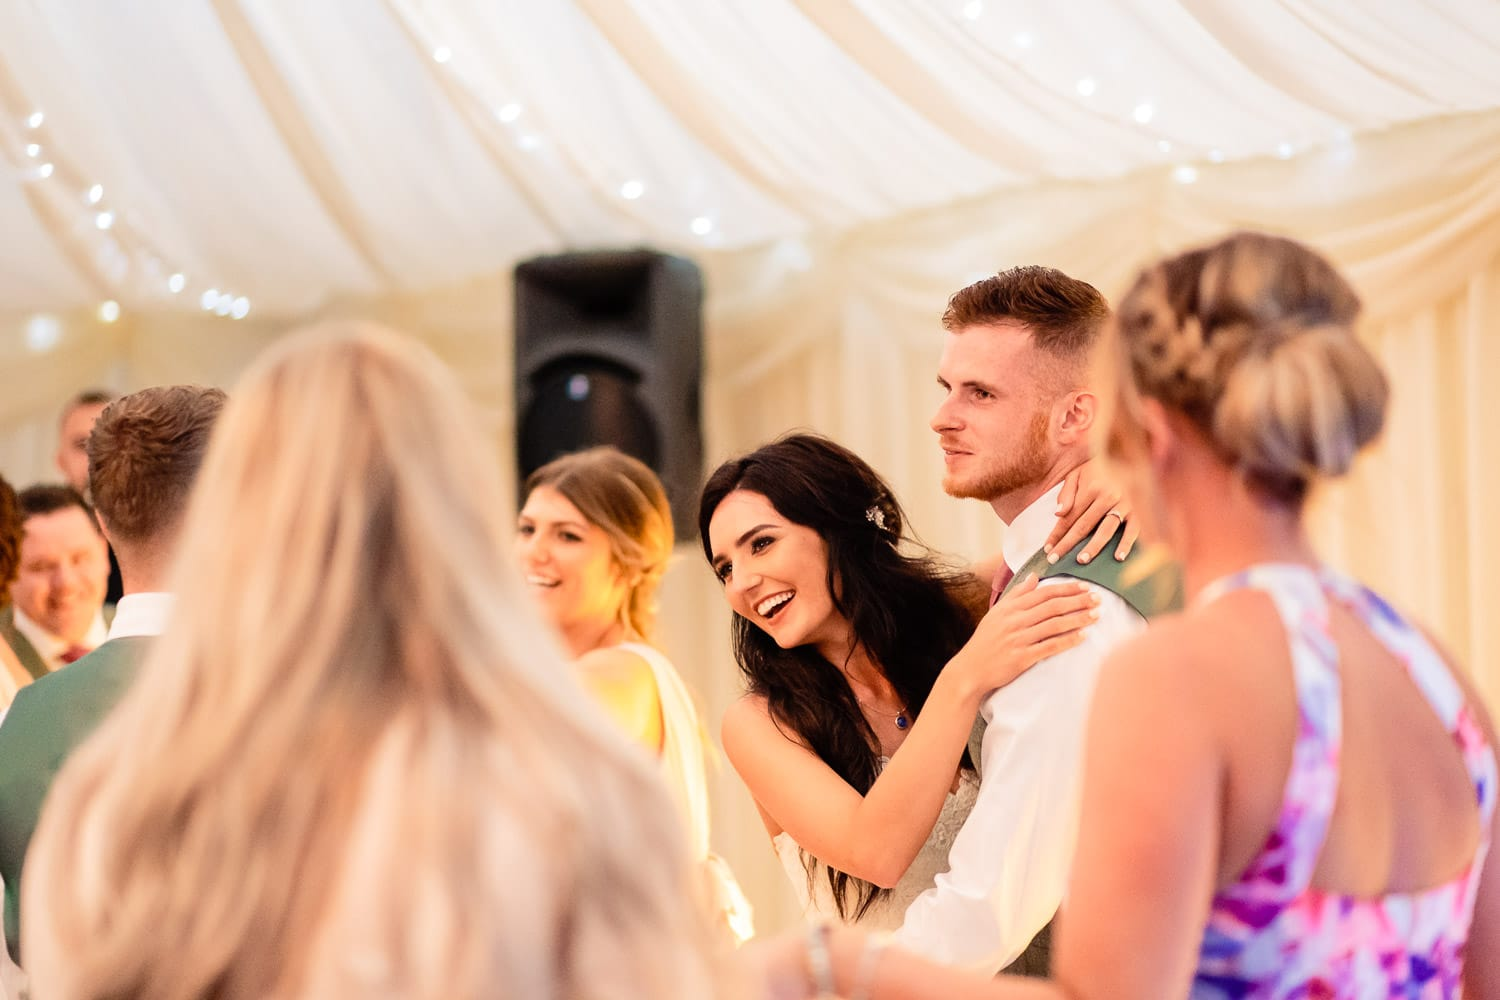 northamptons best wedding photographers capture first dance at The Granary at Fawsley Wedding barn